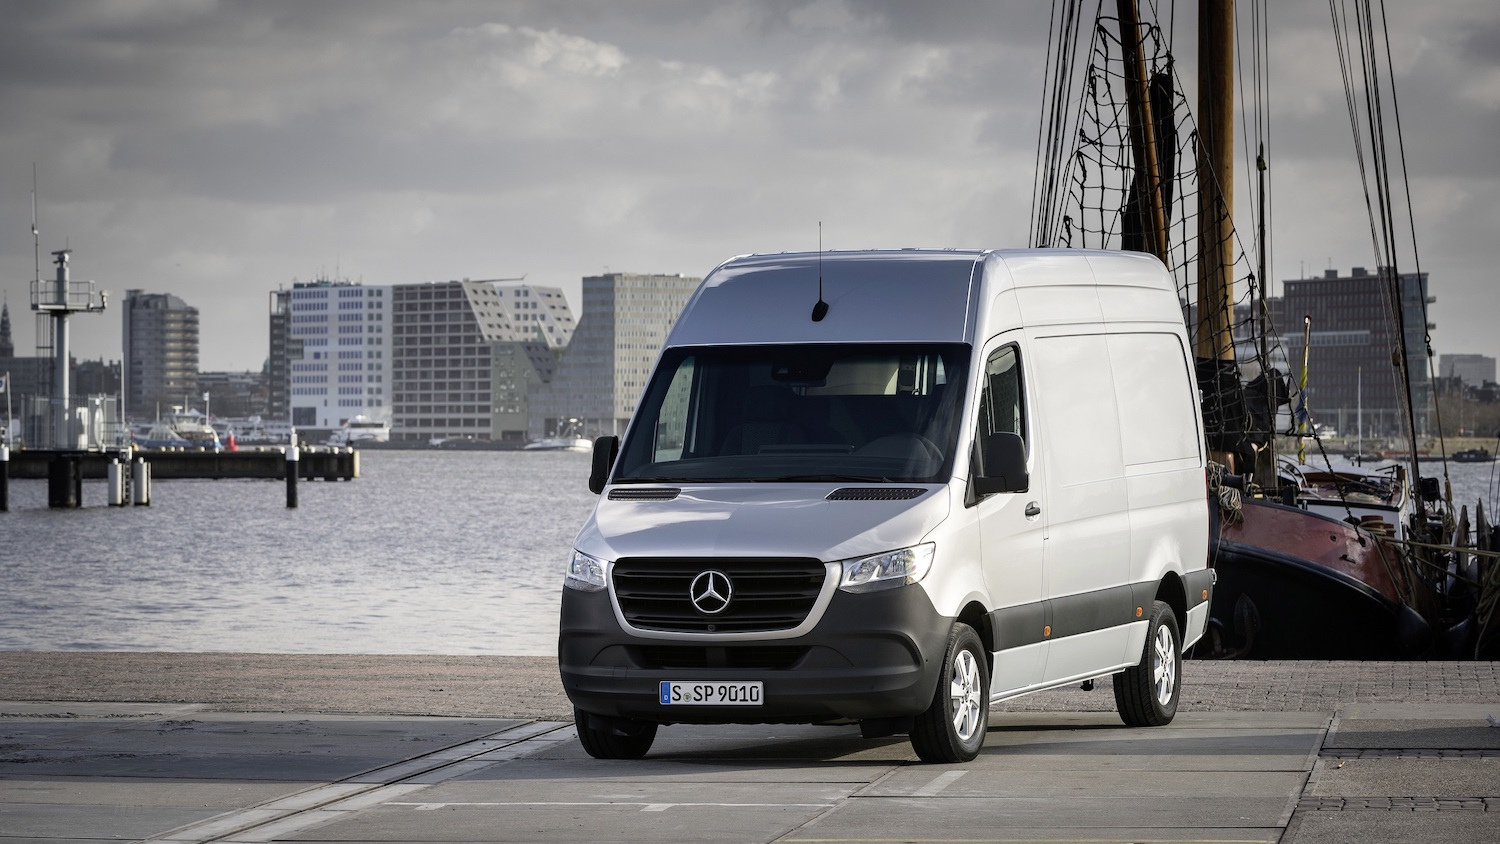 The third generation of Mercedes-Benz Sprinter impresses with its progressive design plus comfort and safety features at passenger car level